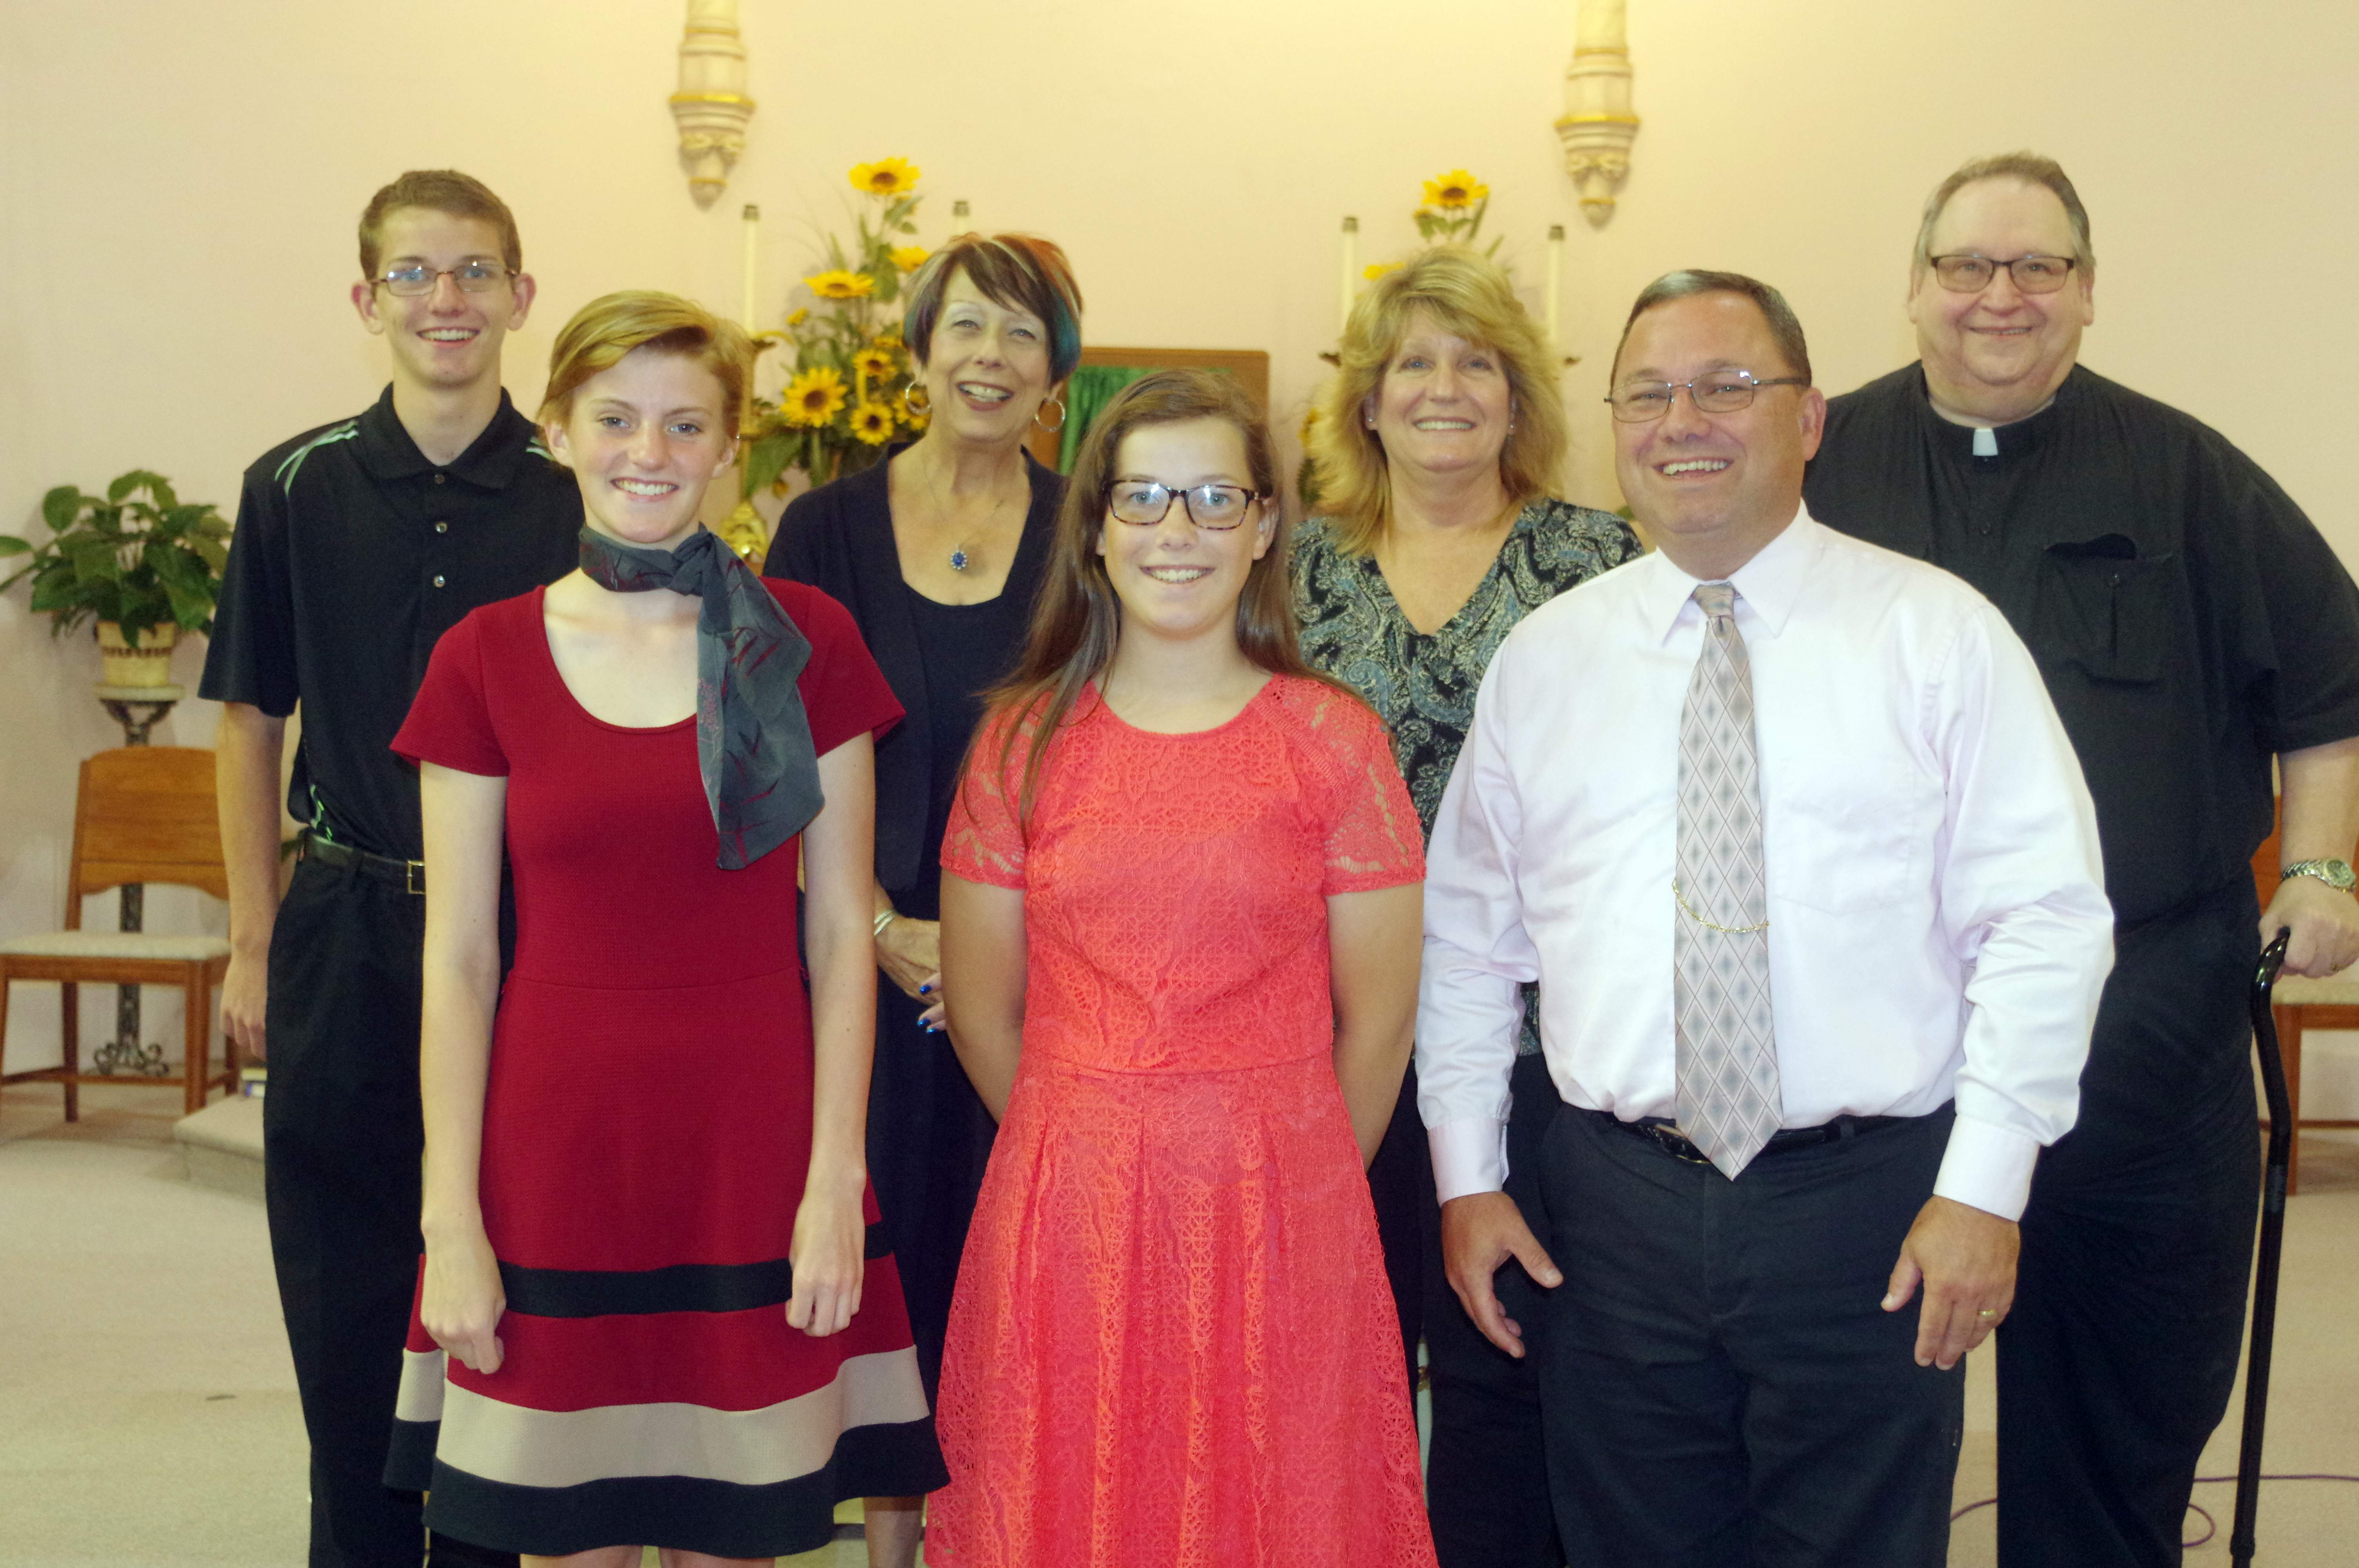 The Sacred Concert, associated with the 38th annual Popeye Picnic, took place Sunday at St. Mary's Catholic Church in Chester. Pictured are, front row from left, Kylie Liefer, soloist; Melody Colonel, soloist; and Steve Colonel. Back row, from left, Mitchell Colonel, soloist; Gwendy Garner, concert coordinator; Vicky Beers, piano prelude and accompanist and Father Eugene Wojcik, master of ceremonies.